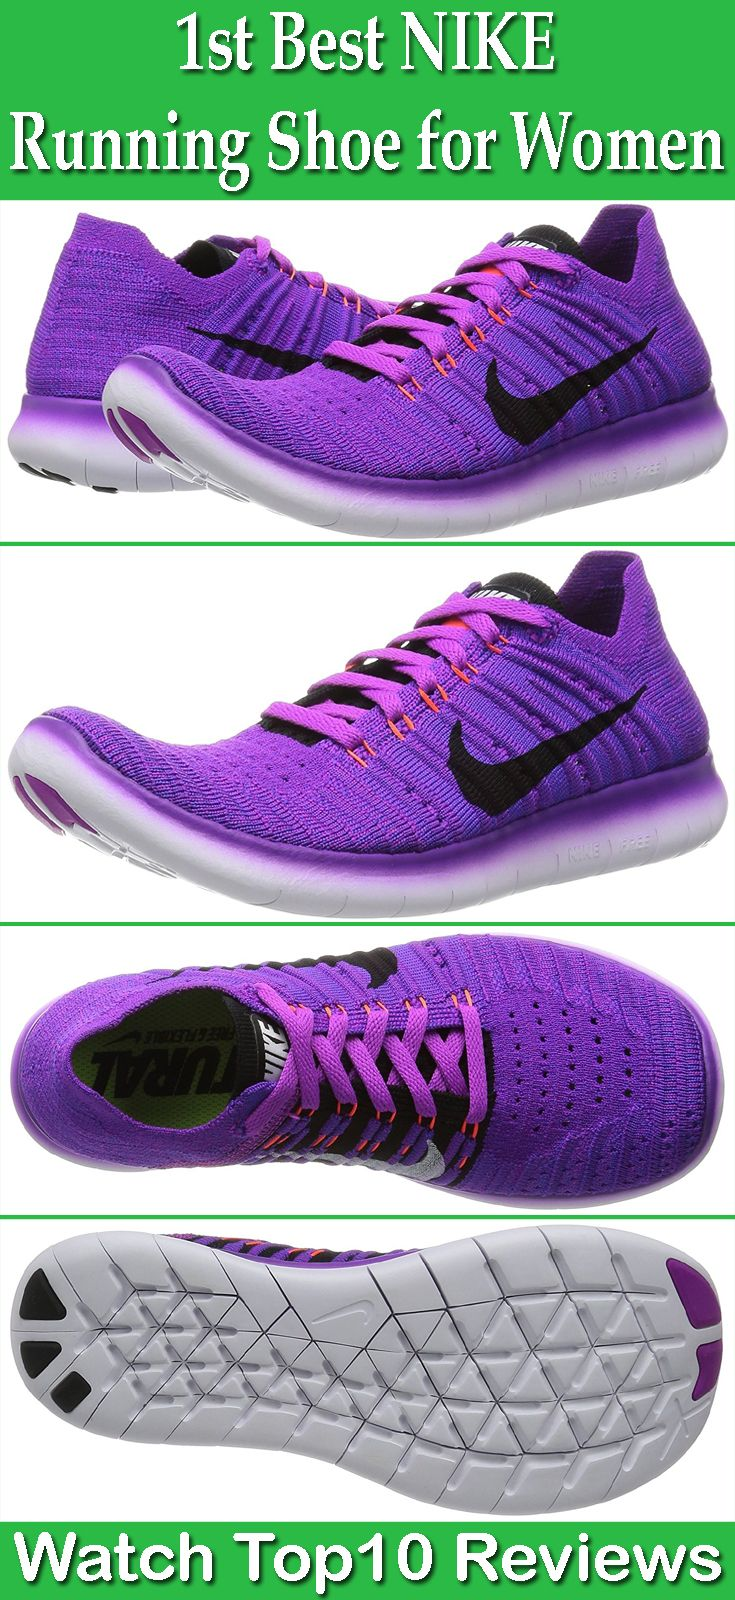 Nike Women's Free Rn Flyknit Running Shoe: Nike Women's Free Rn Flyknit Running Shoe is the first best nike running shoe in our list. It promises to provide a best running experience like no other. Its Flyknit technology wraps the foot for a secured fit and reduce foot slippage.